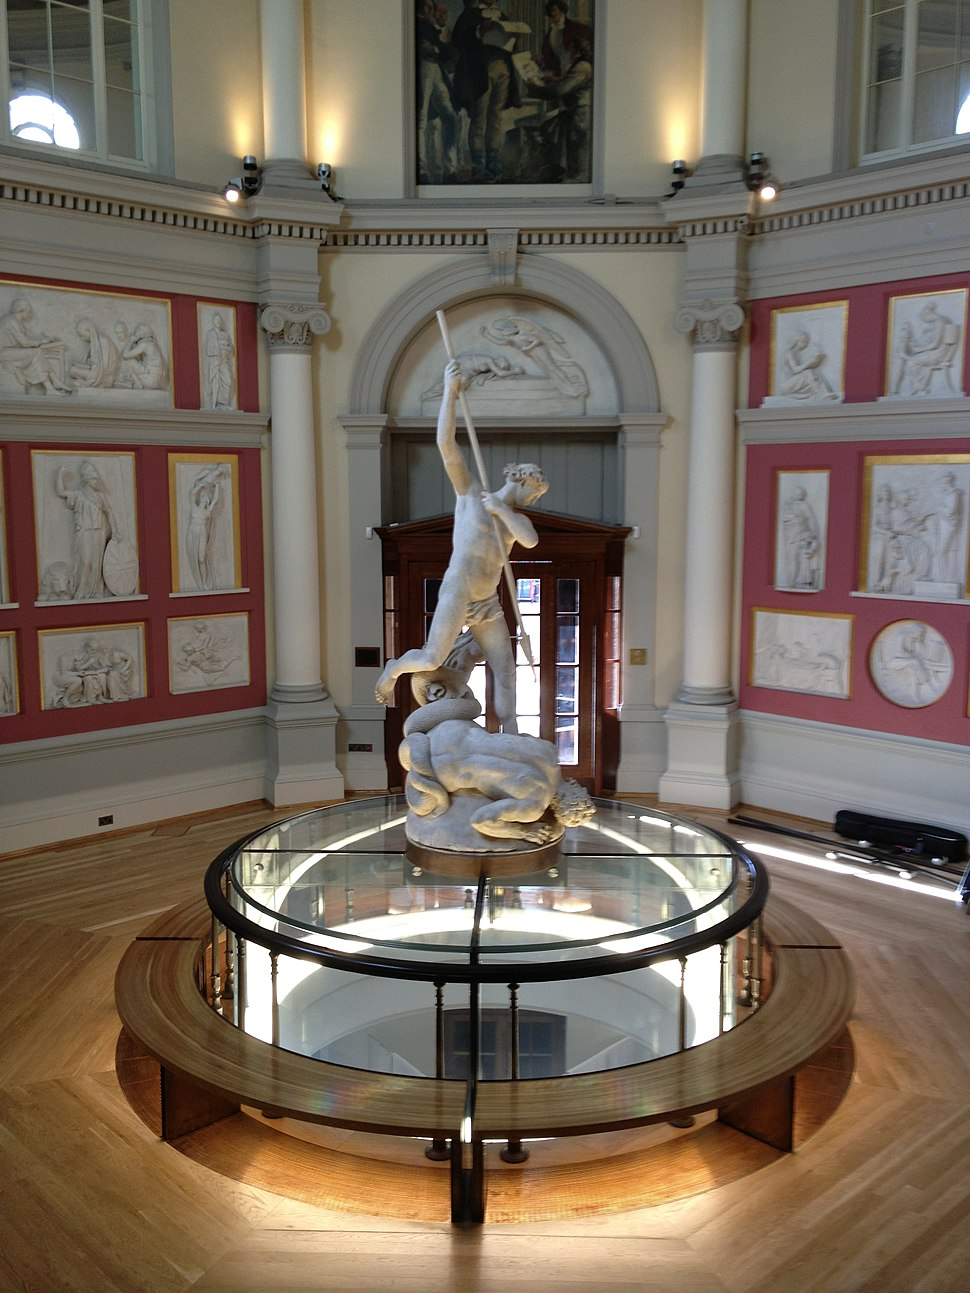 Flaxman Gallery, UCL